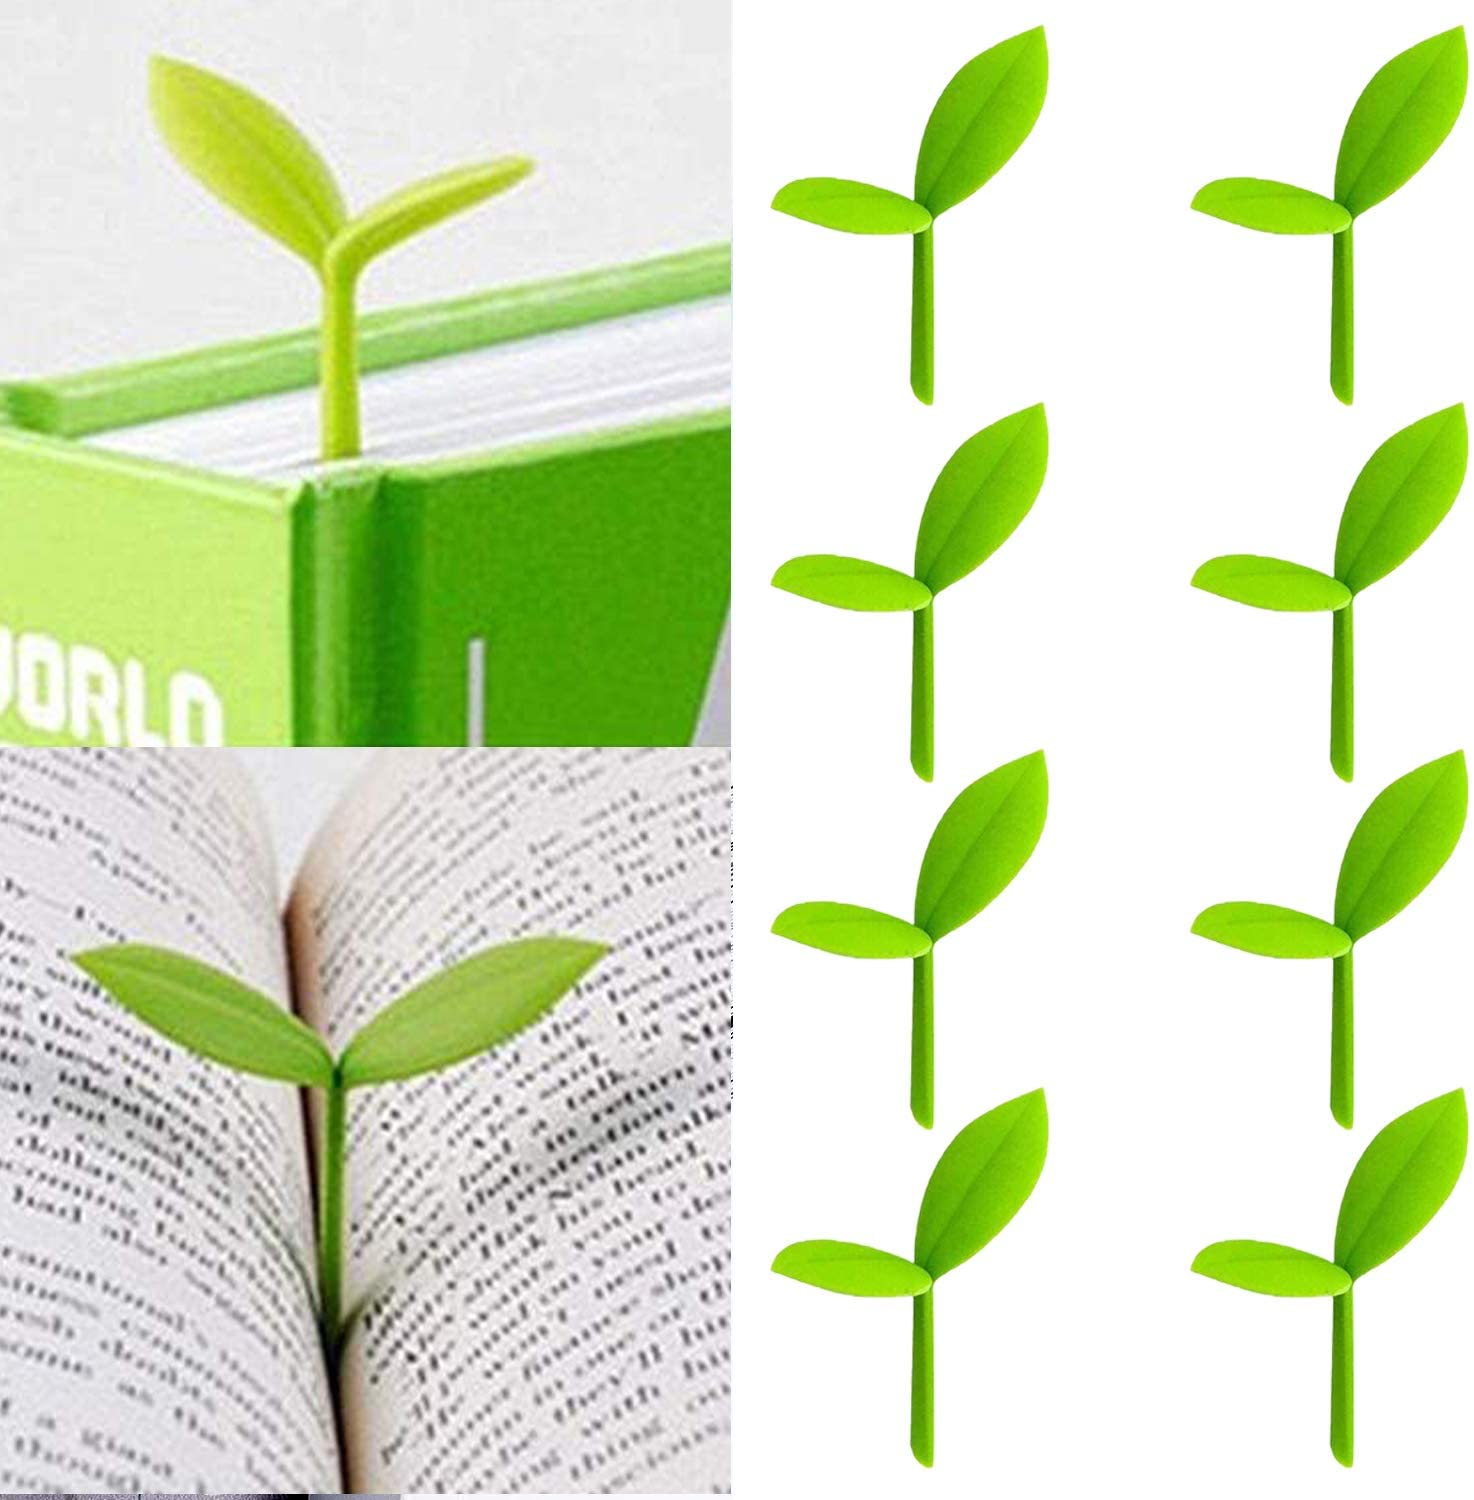 Baltimore Mall Sprout Little Green Bookmarks Buds Grass Outlet sale feature Creative Silicone